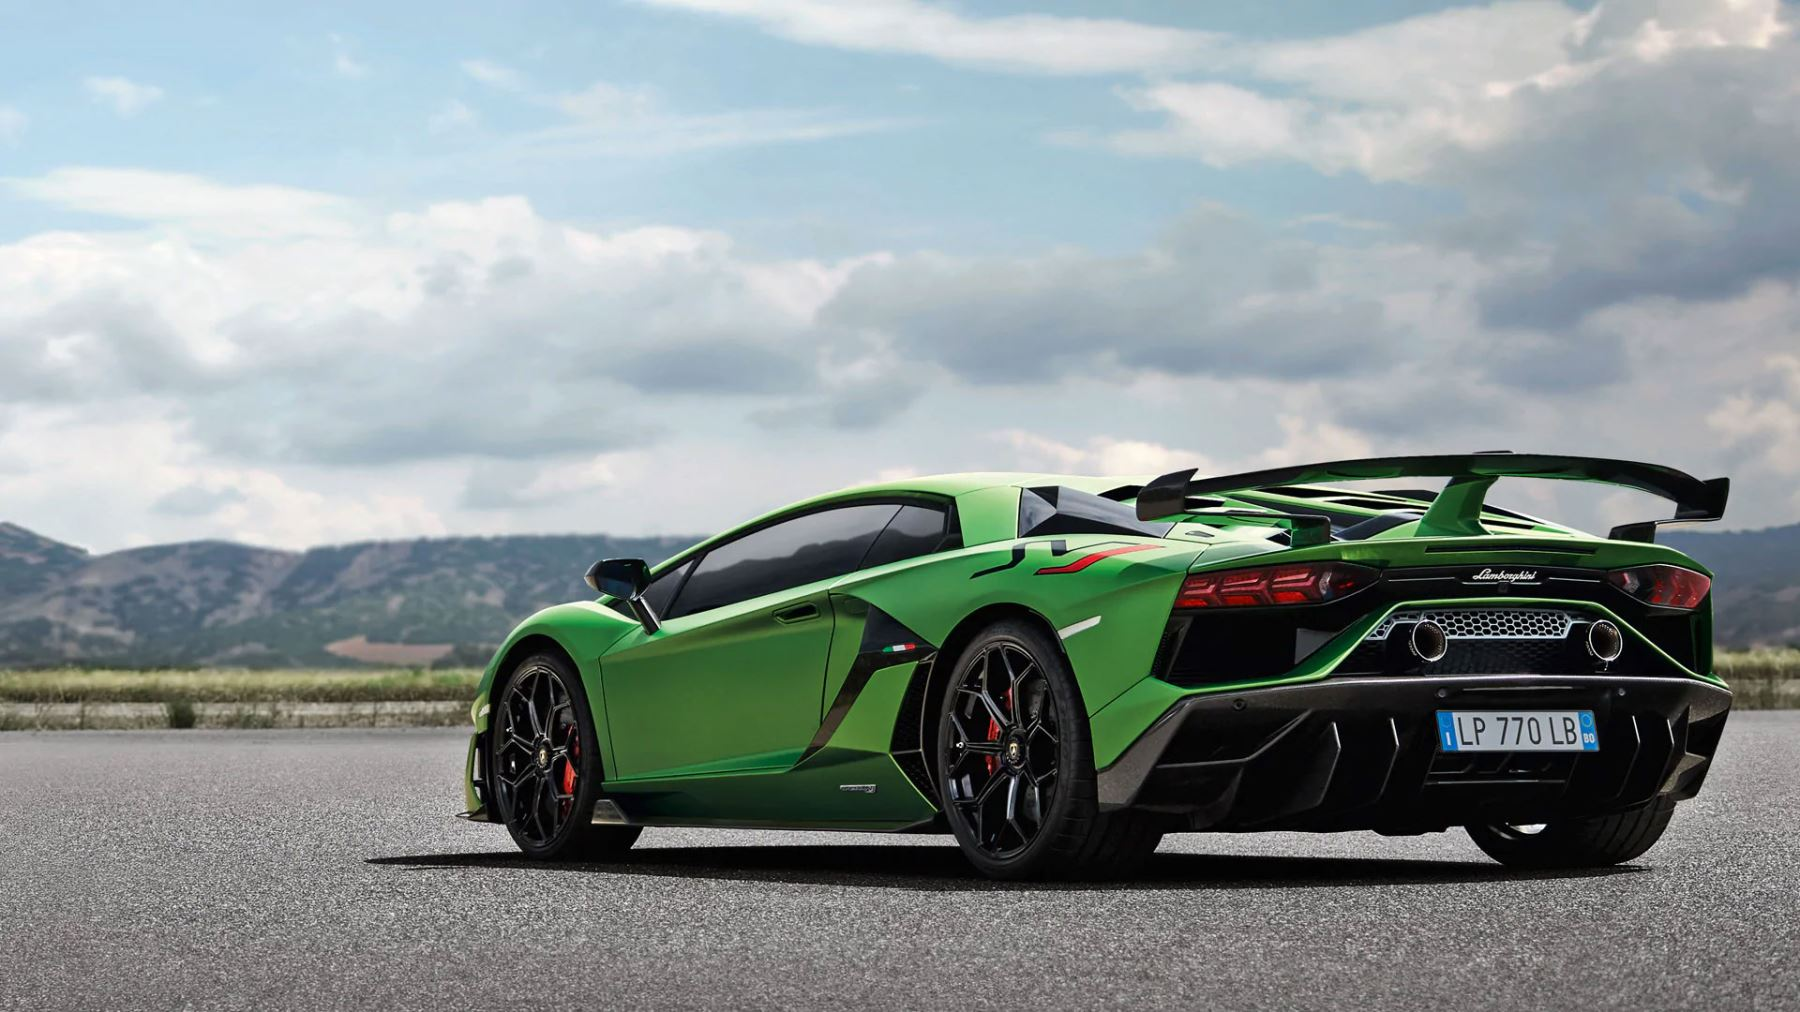 Lamborghini Aventador Svj Coupe Real Emotions Shape The Future